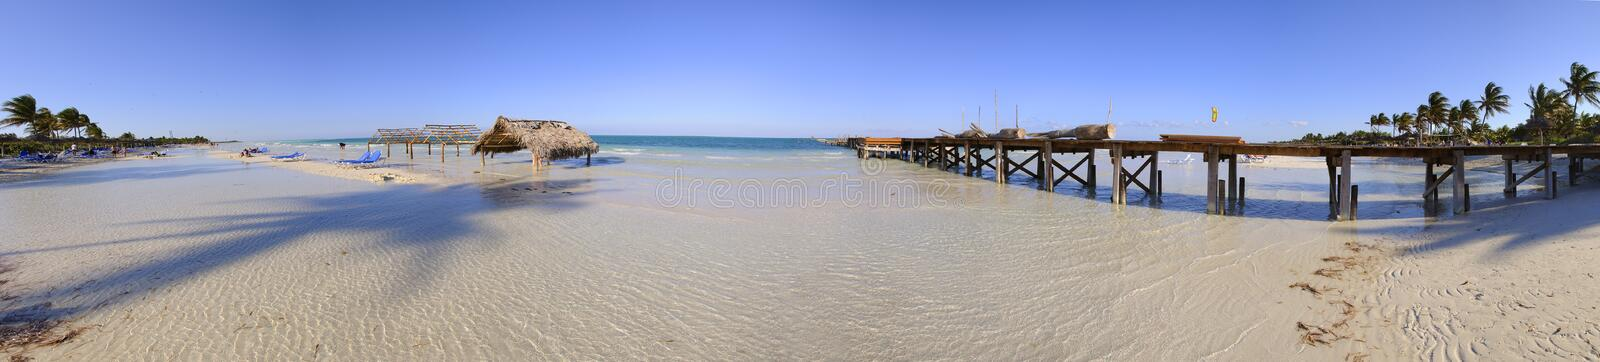 panorama de plage tropical photographie stock libre de droits